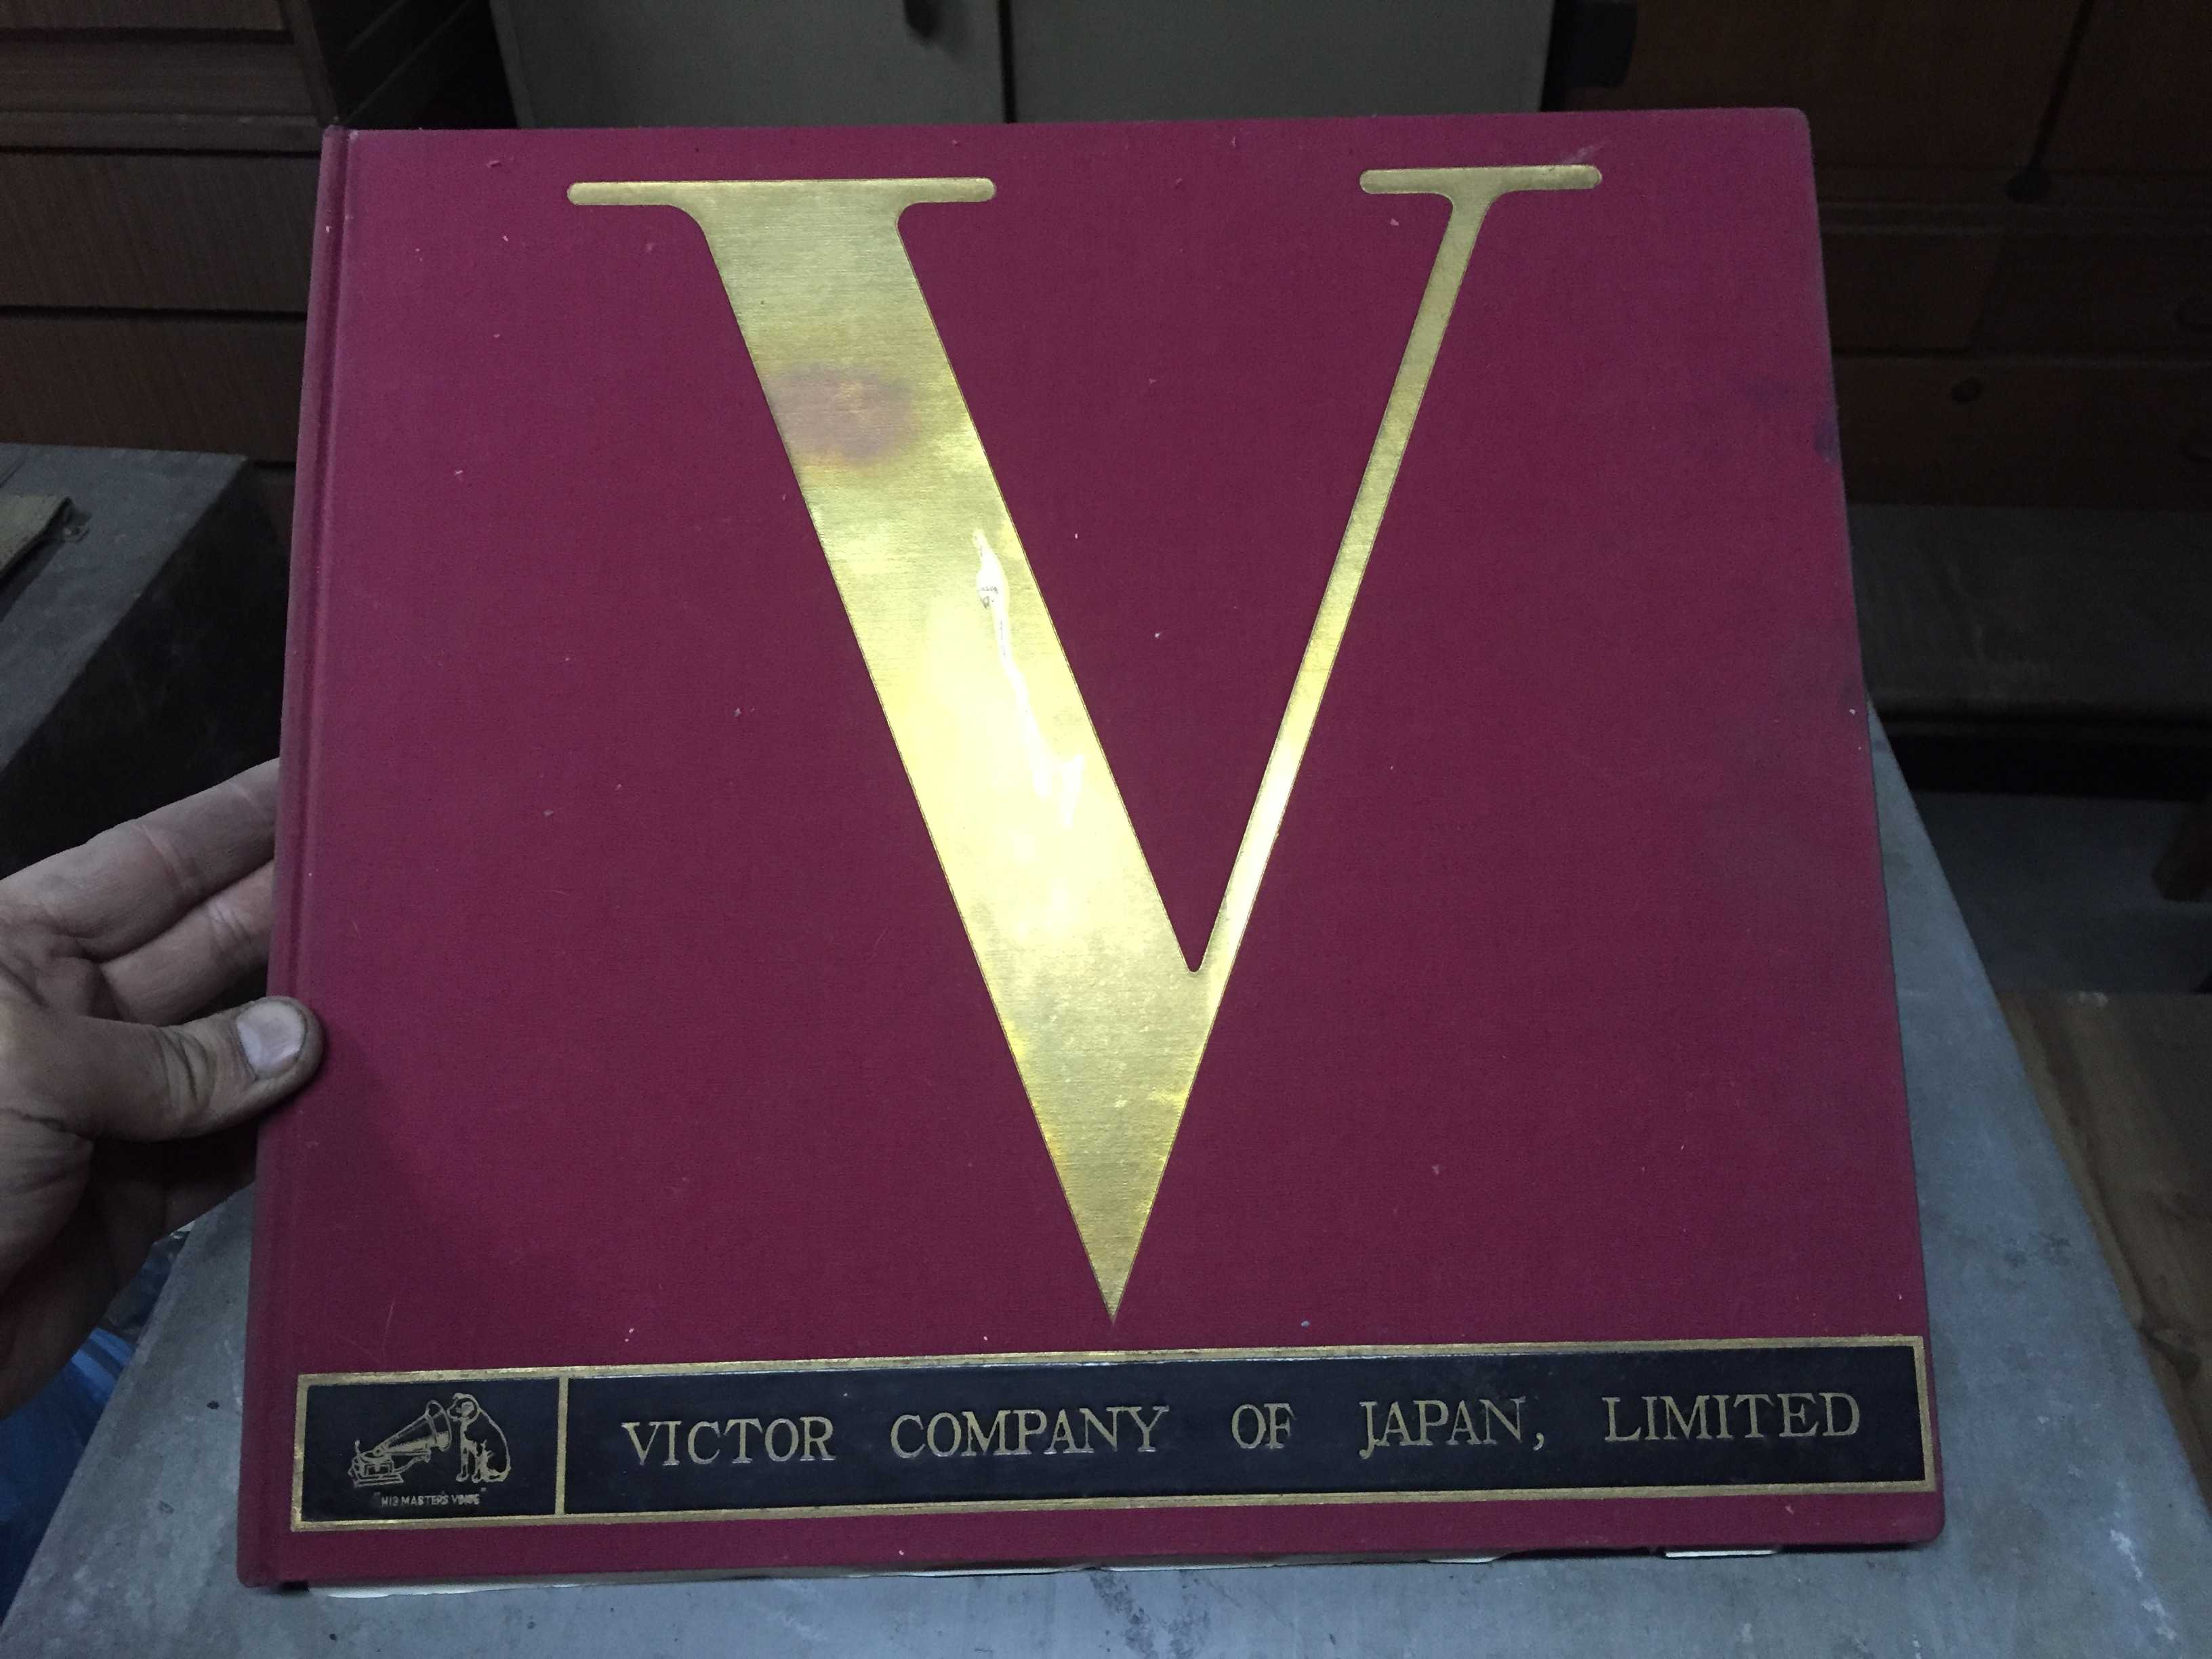 VICTOR COMPANY OF JAPAN, LIMITED